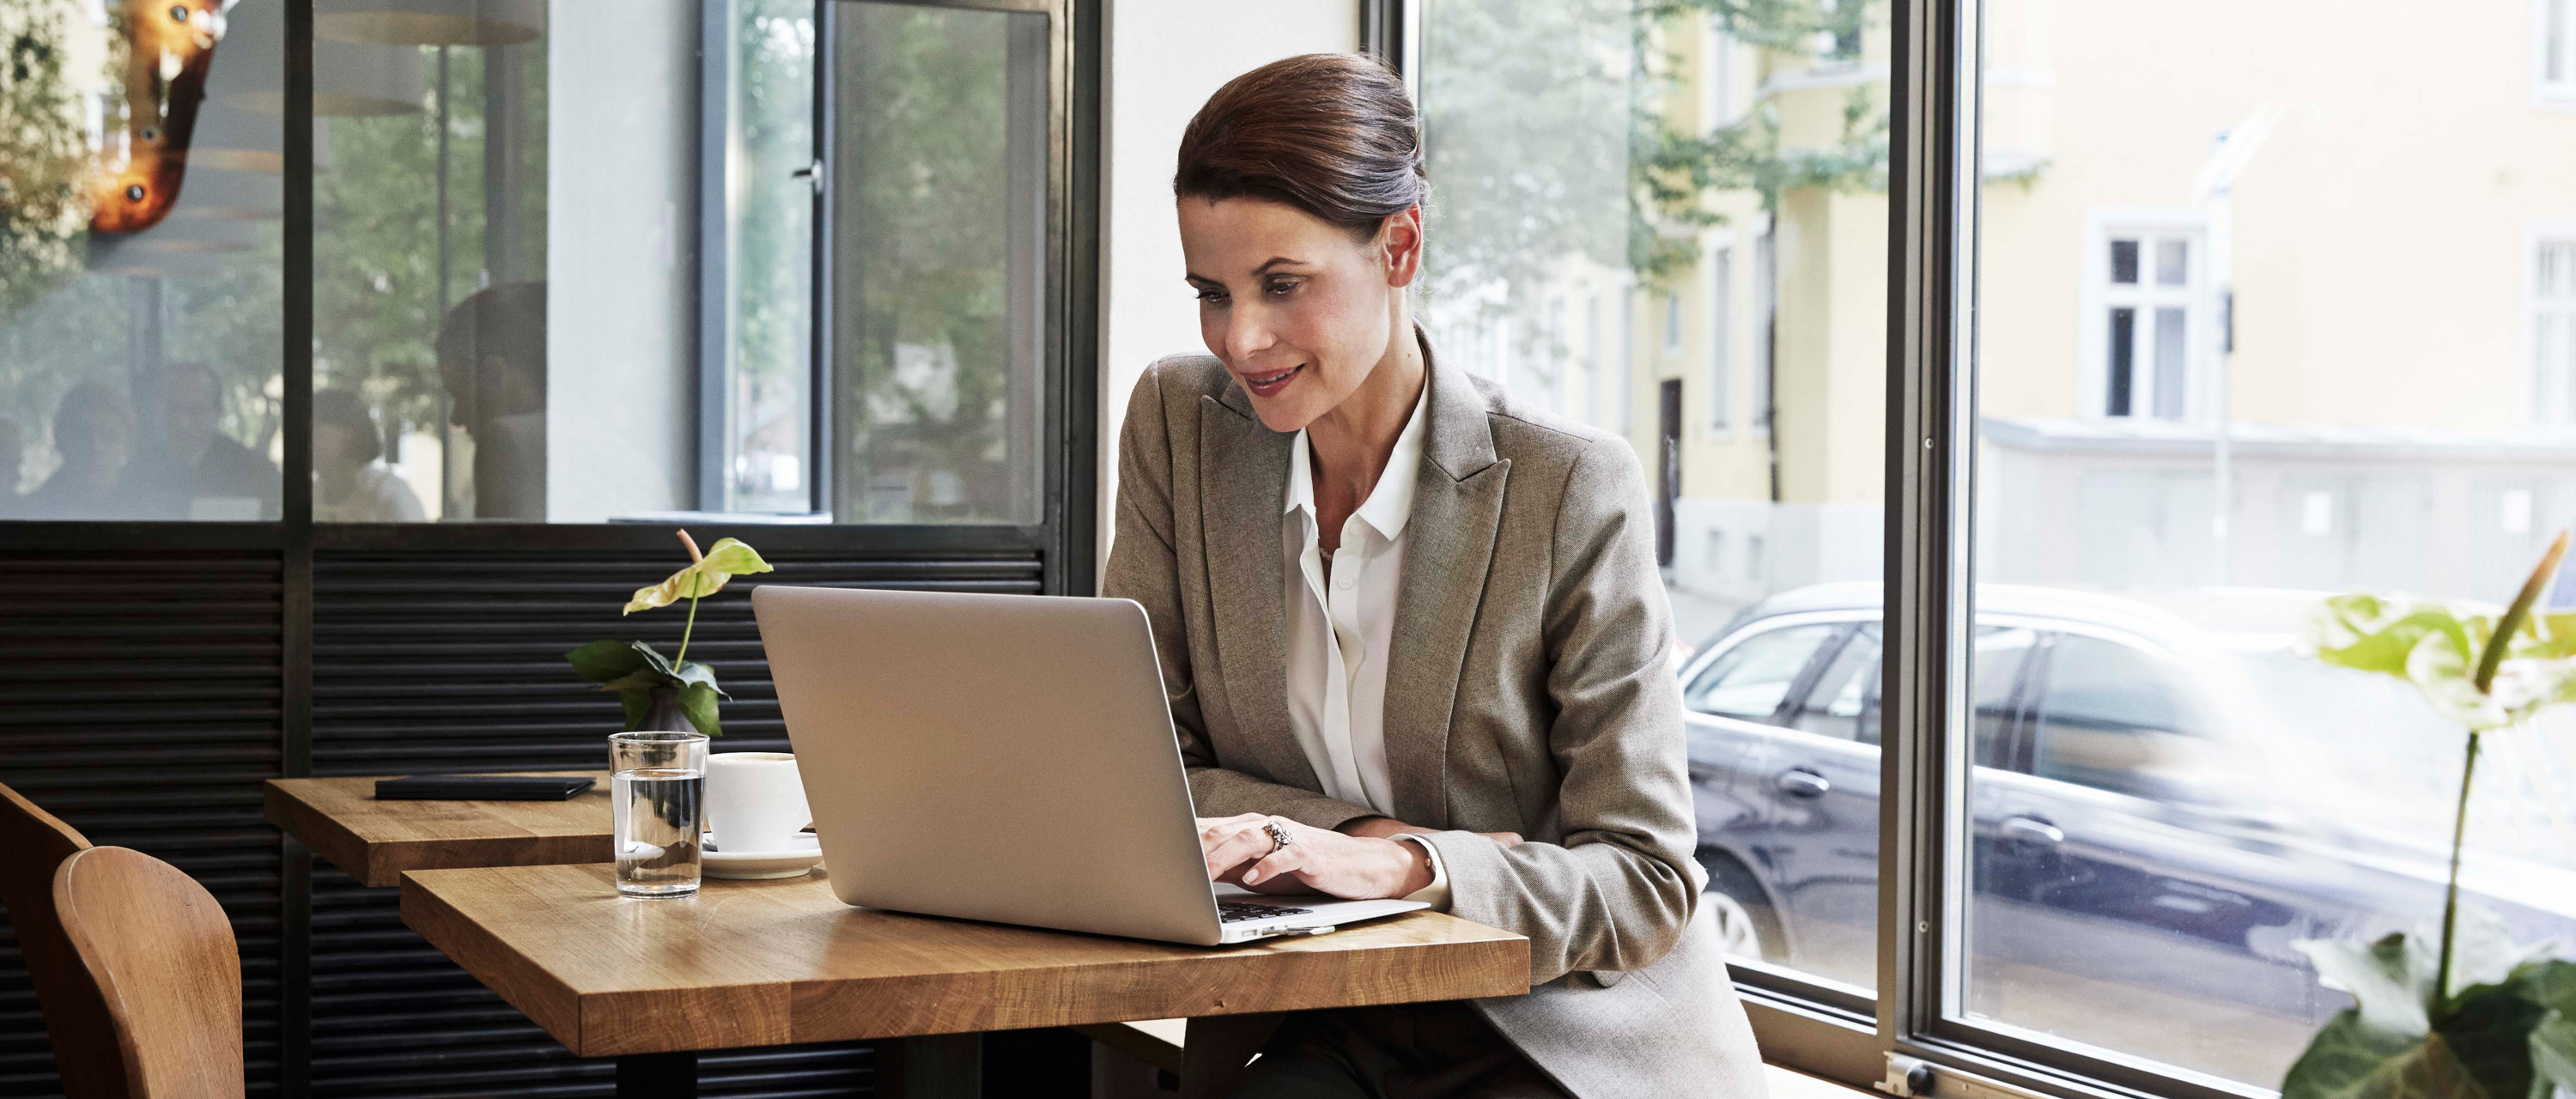 Woman at laptop